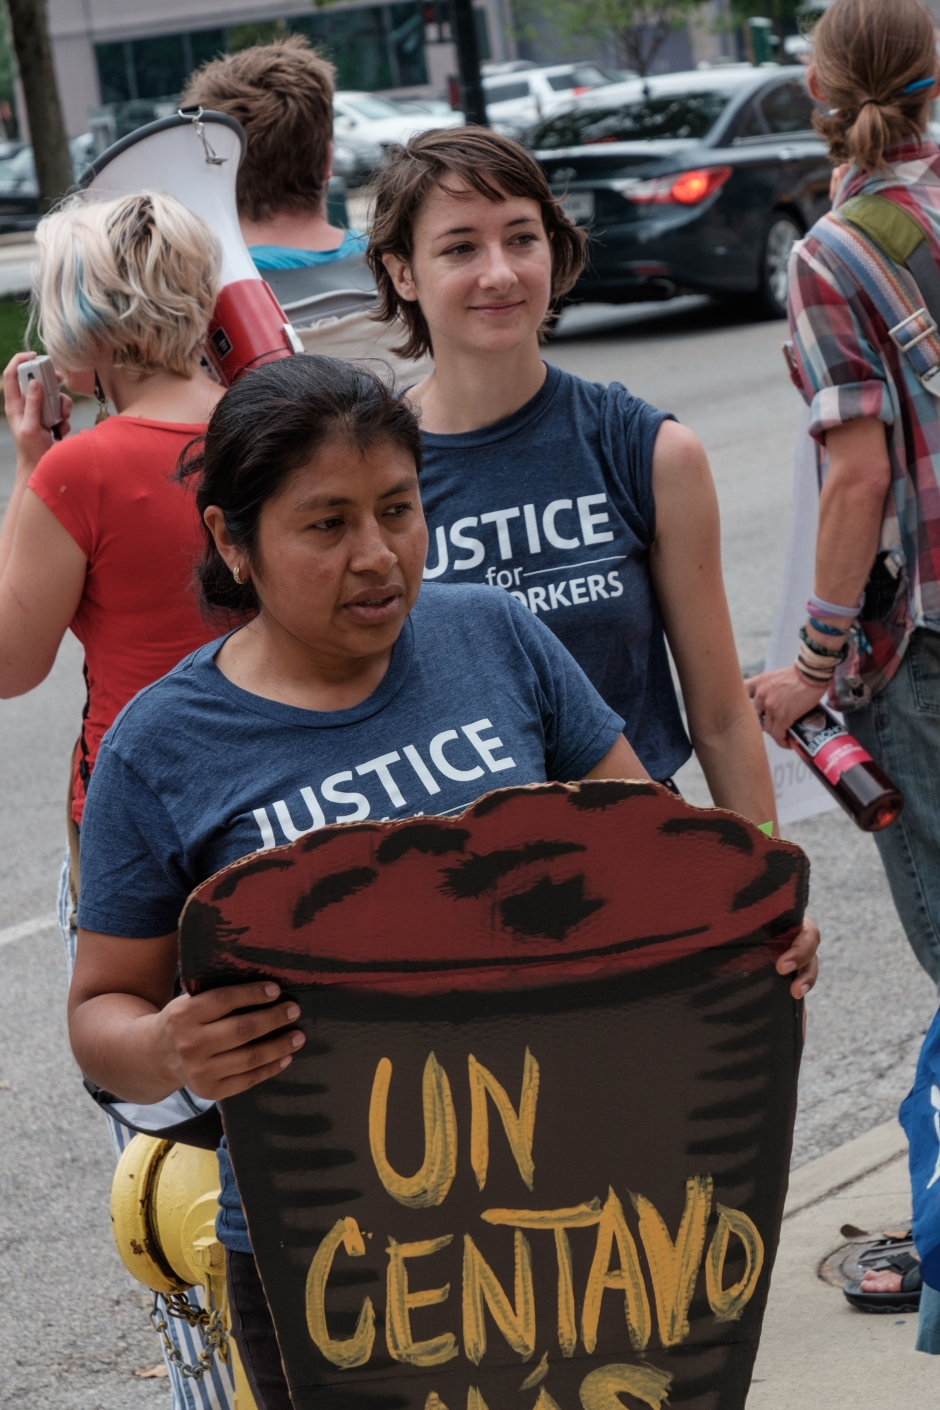 Julia de la Cruz, Coalition of Immokalee Workers, protests for change in how Kroger manages its supply chain for agricultural workers. Photo: Paul Davis, C4AD.